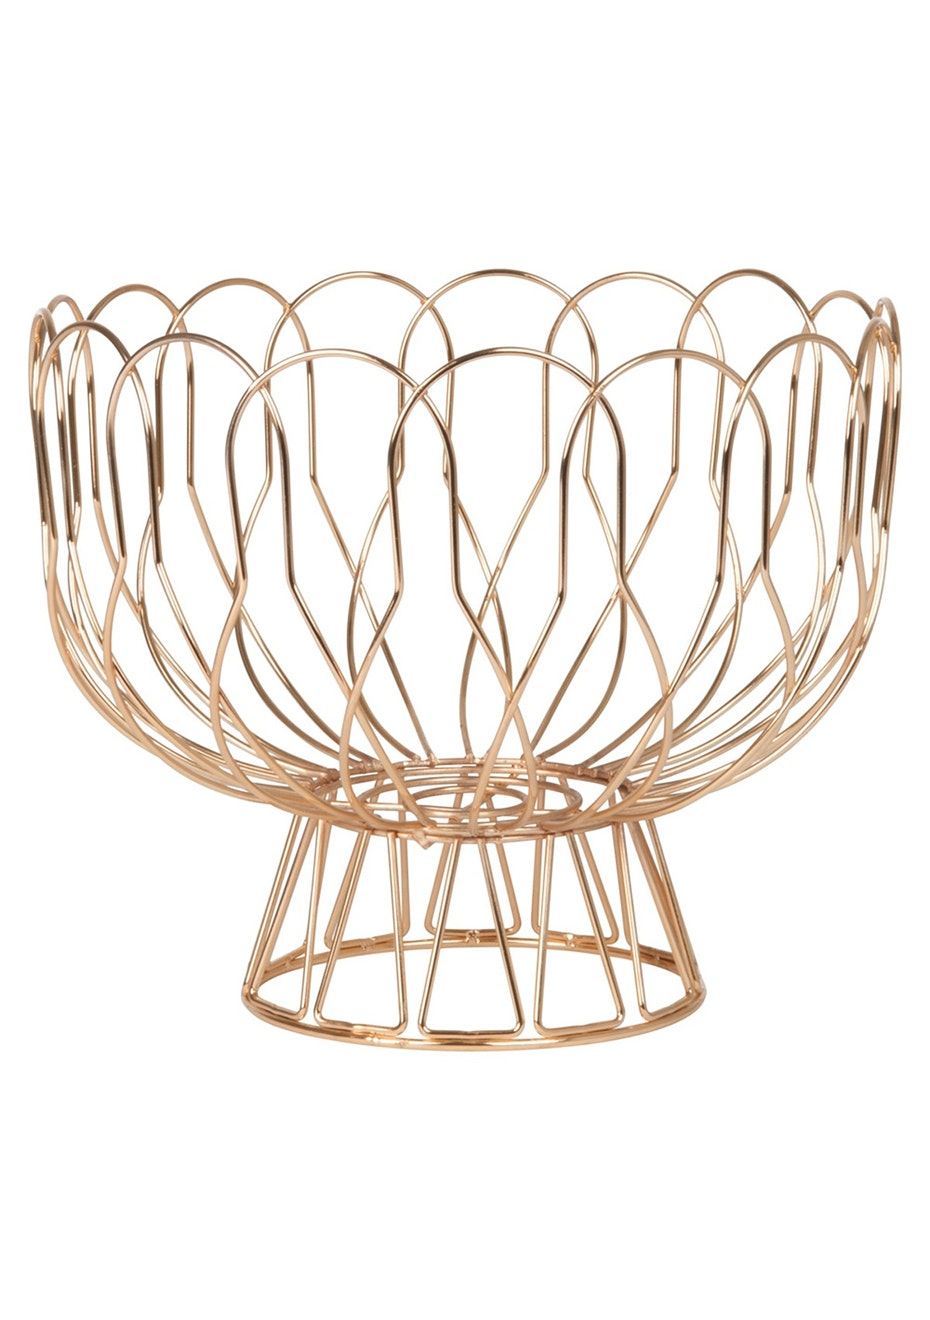 Pt Home - Fruit bowl Wired - Copper